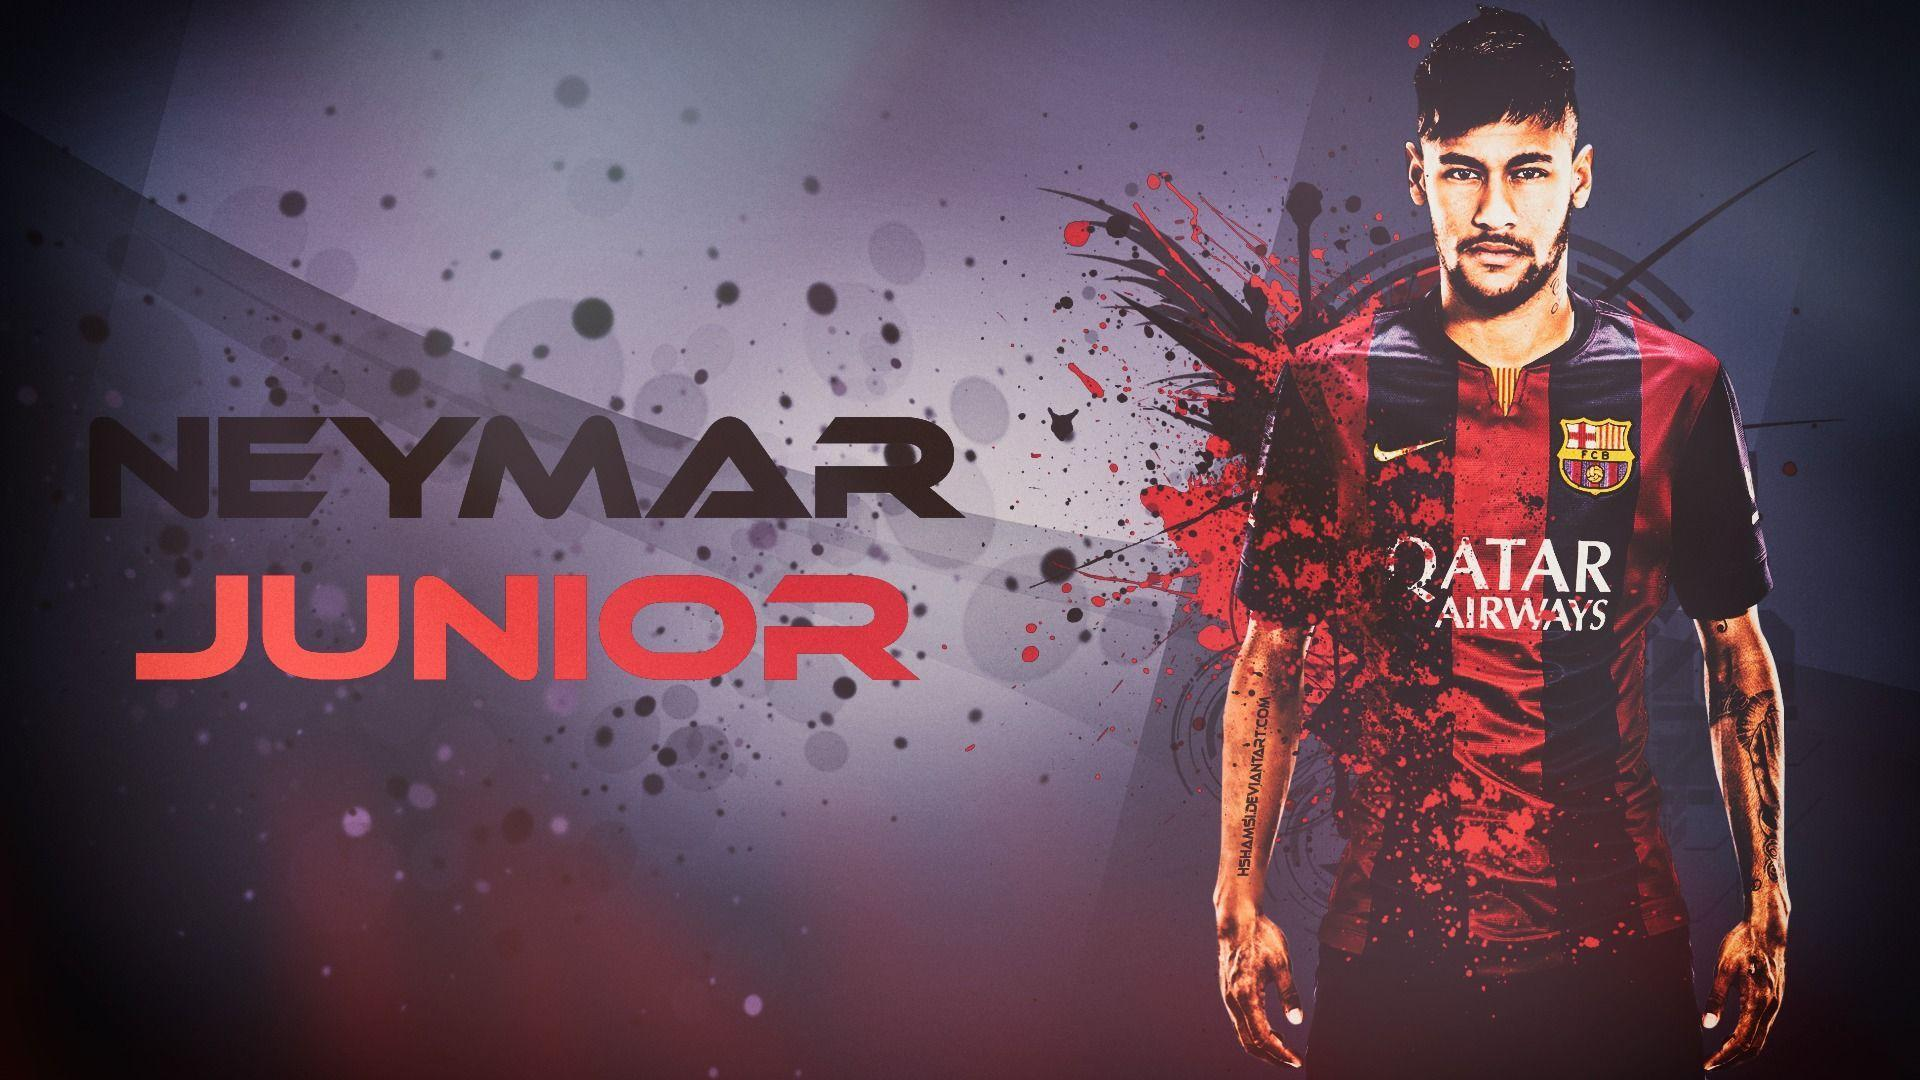 Neymar Jr Wallpaper 2015 Hd - WallpaperSafari